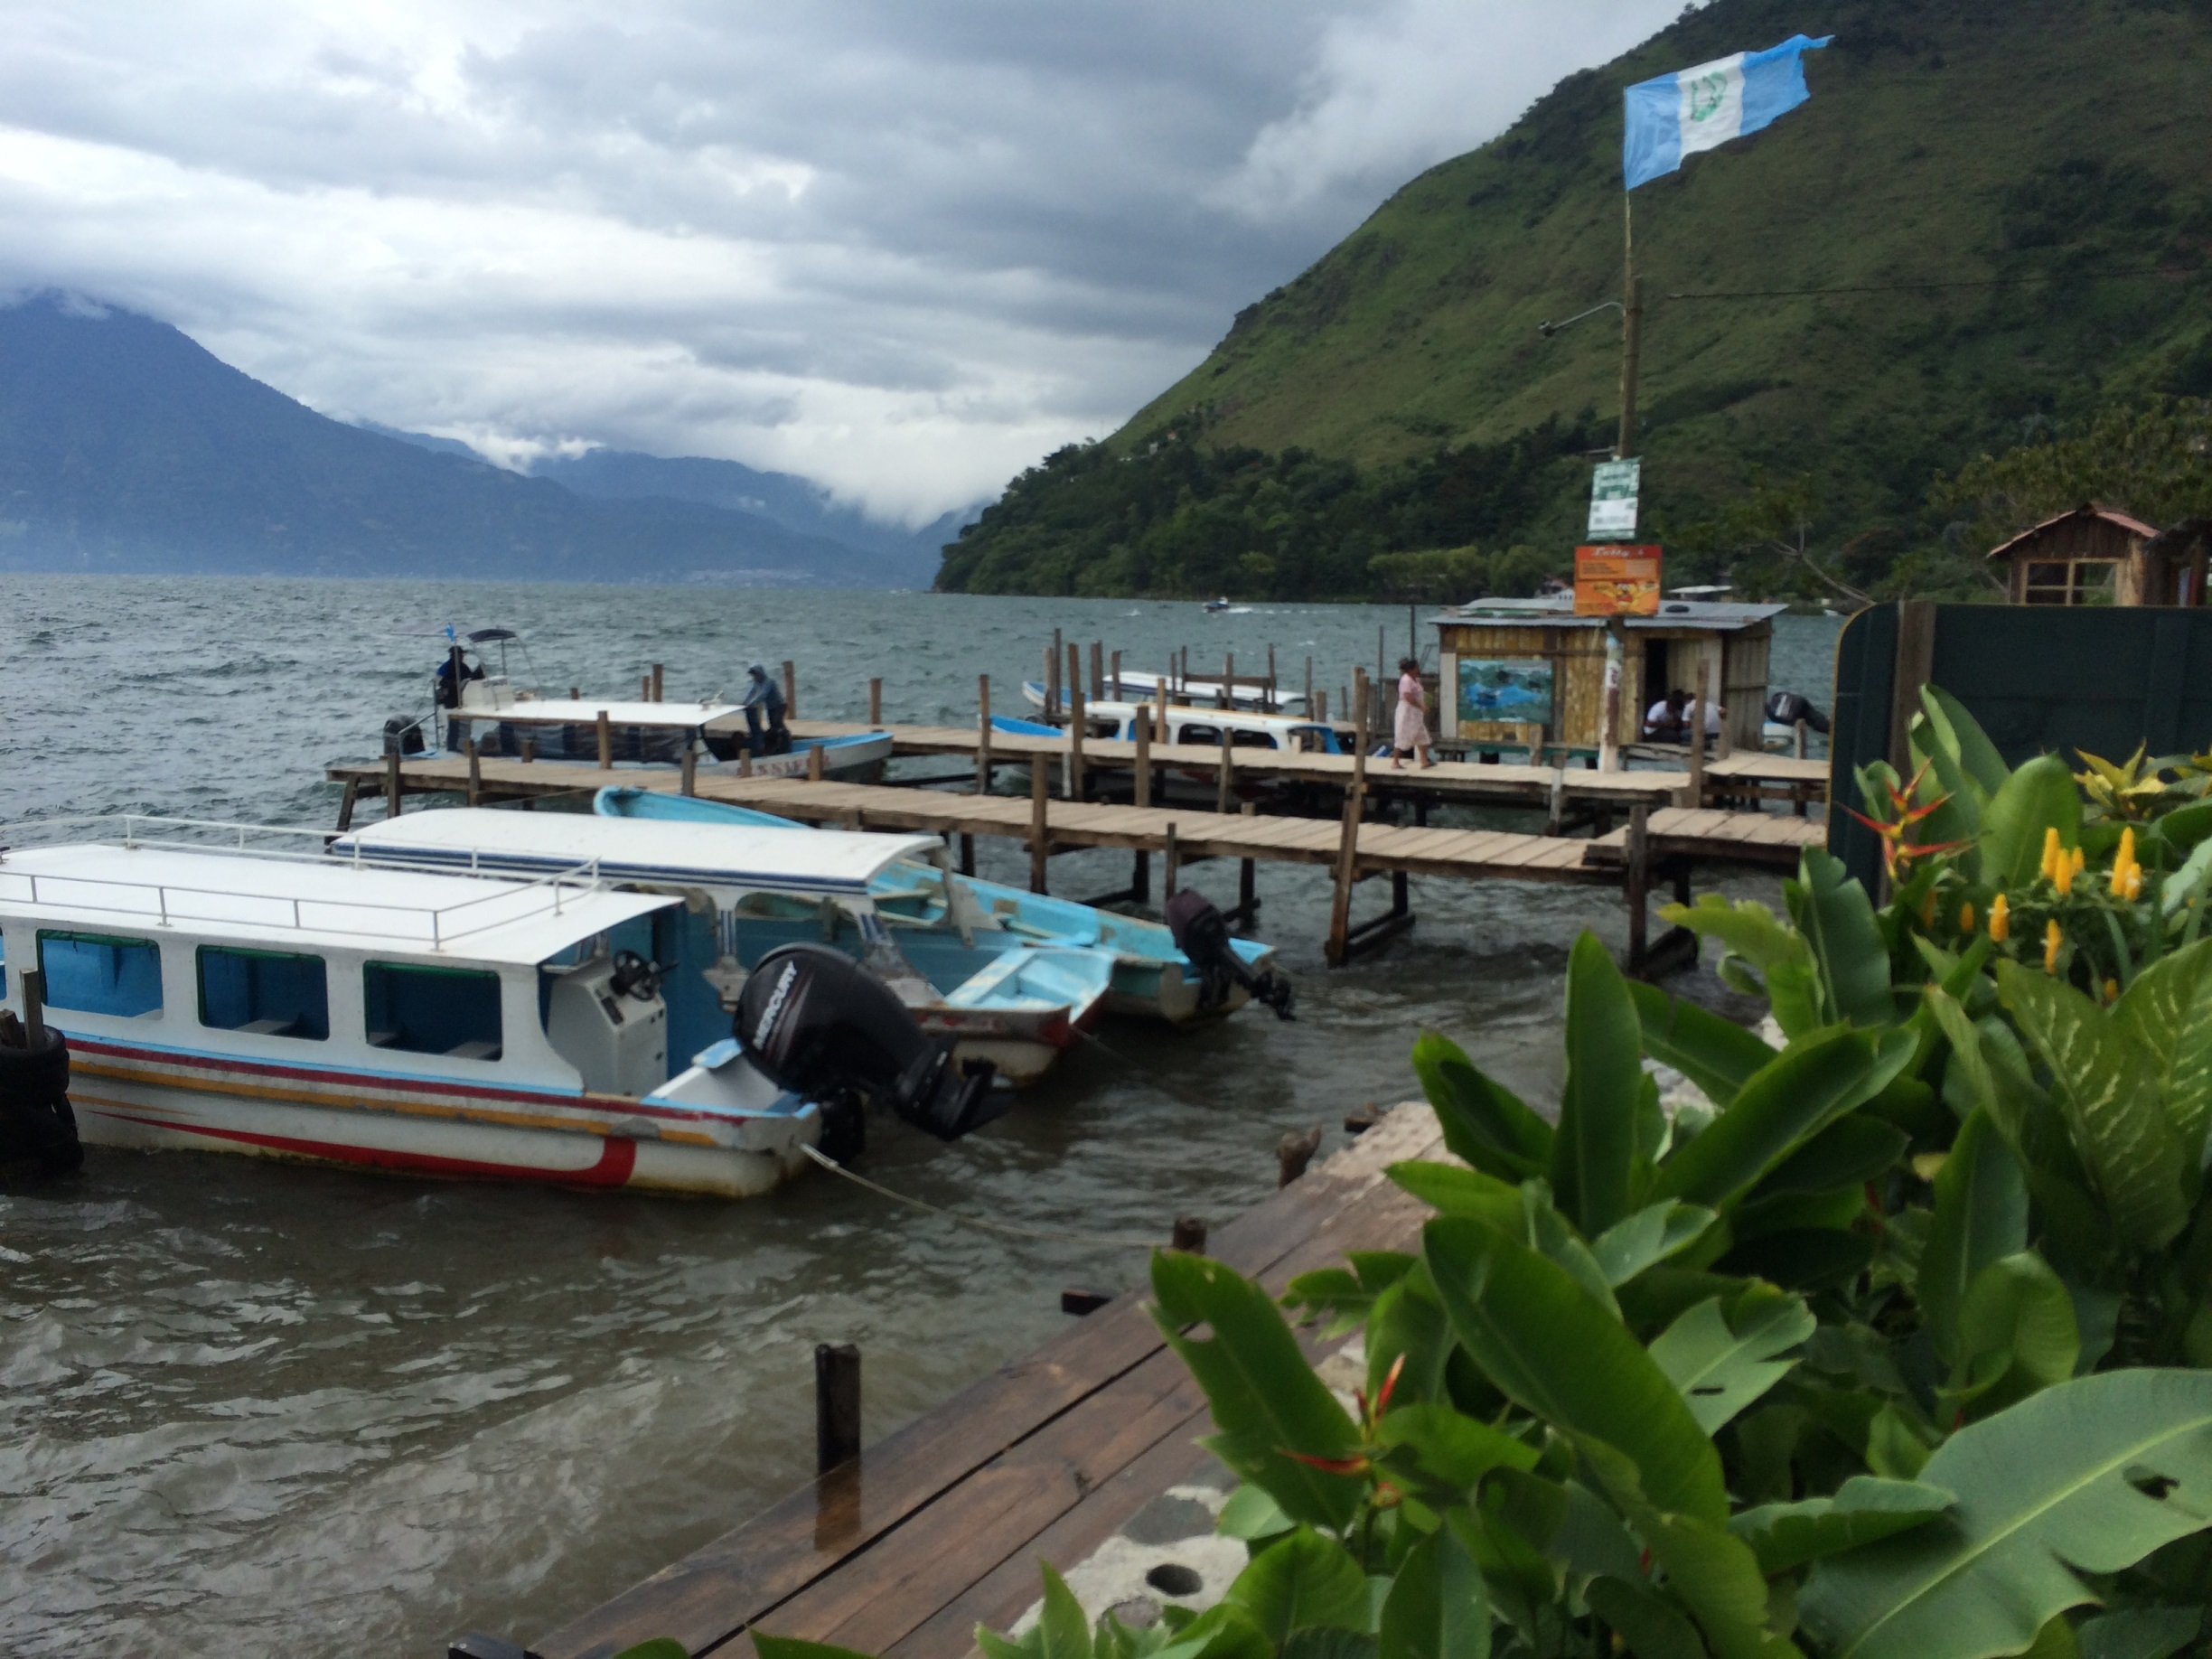 We arrived around 3 pm. Lake Atitlan is pretty choppy in the afternoon.